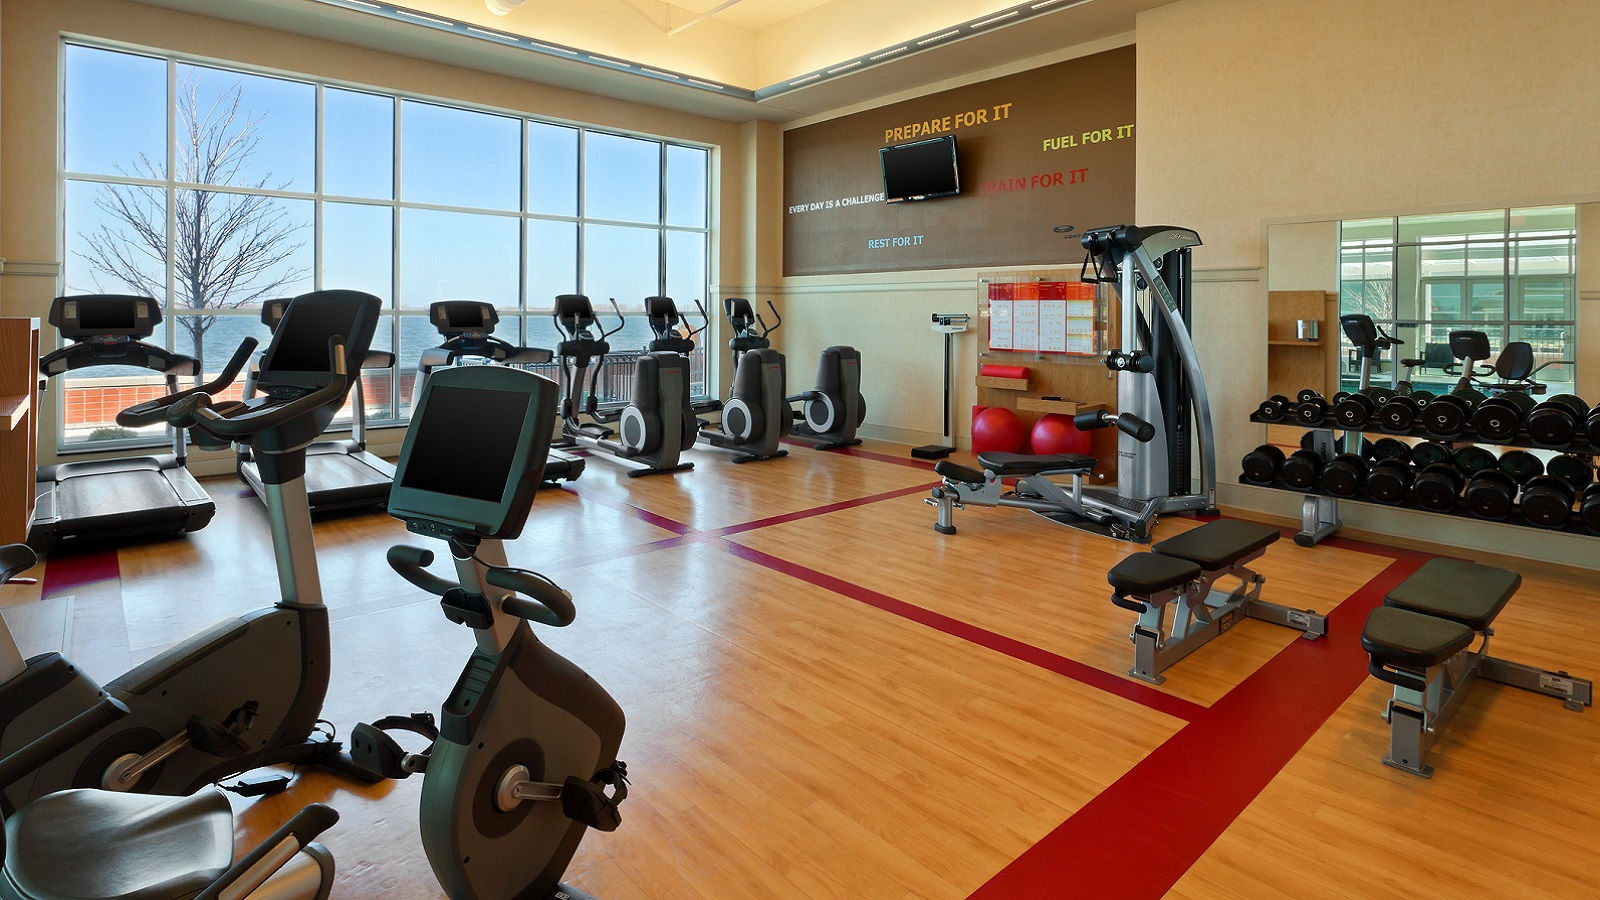 Erie Hotel Features - Fitness Center